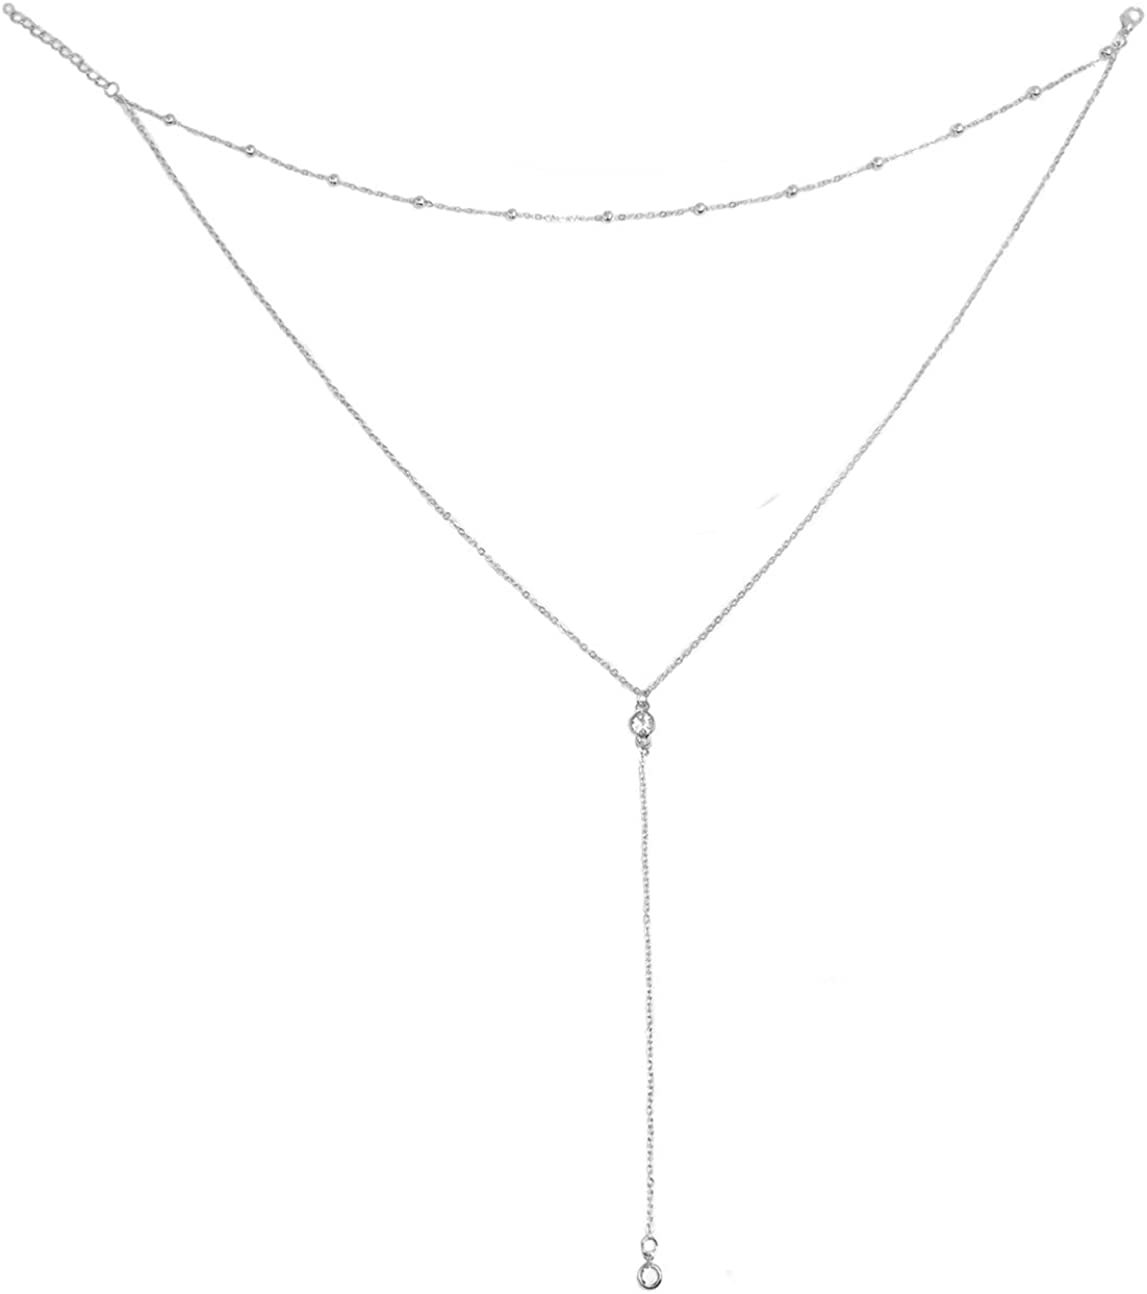 Wowanoo Vintage Double Layer Alloy Crystal Choker Necklace with Long Chain Pendant